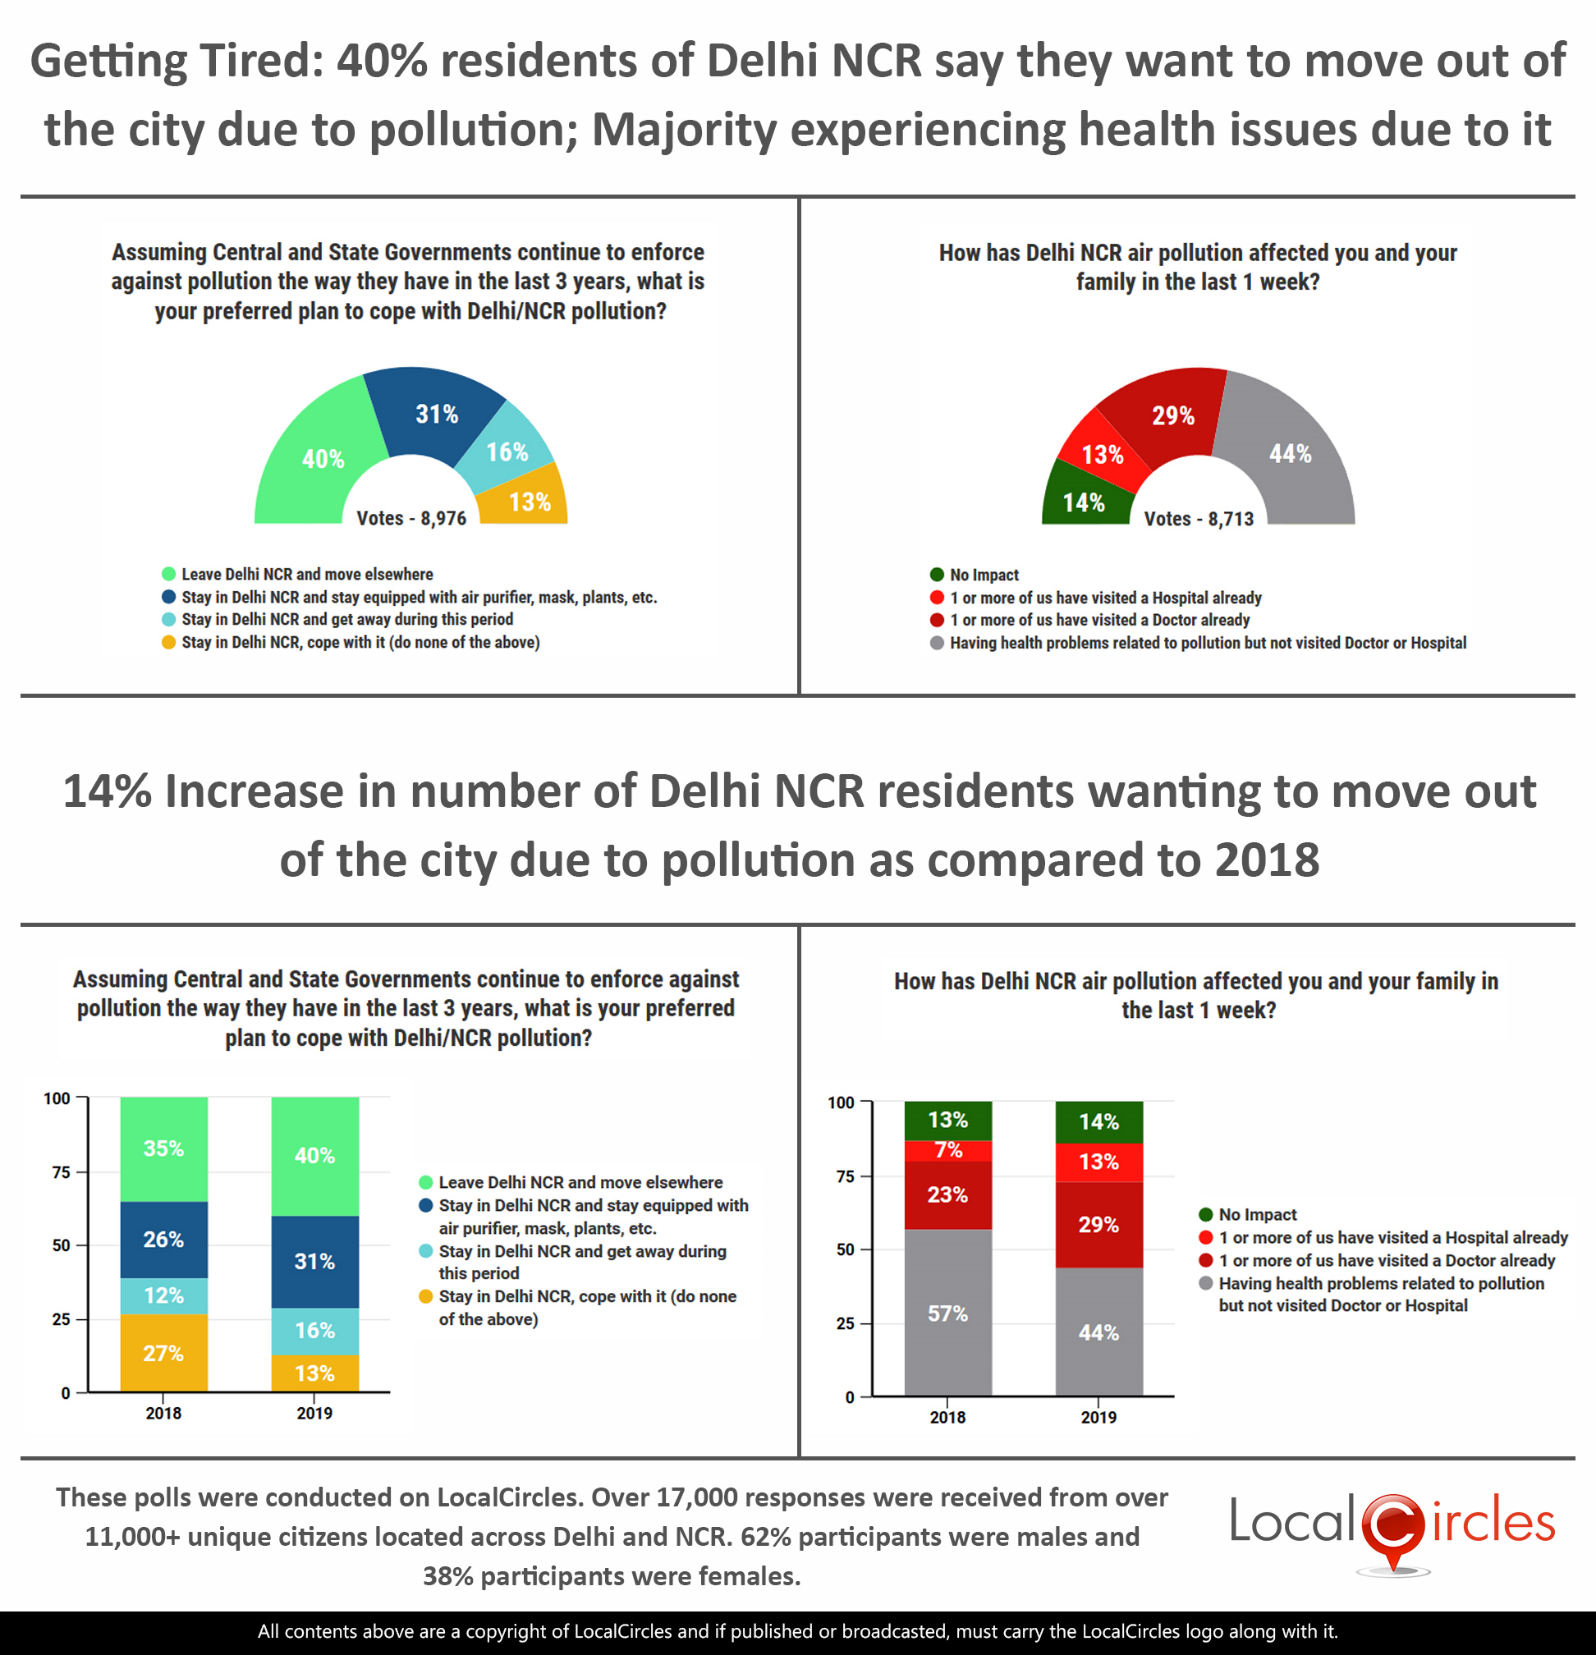 Getting Tired: 40% residents of Delhi NCR say they want to move out of the city due to pollution; Majority experiencing health issues due to it